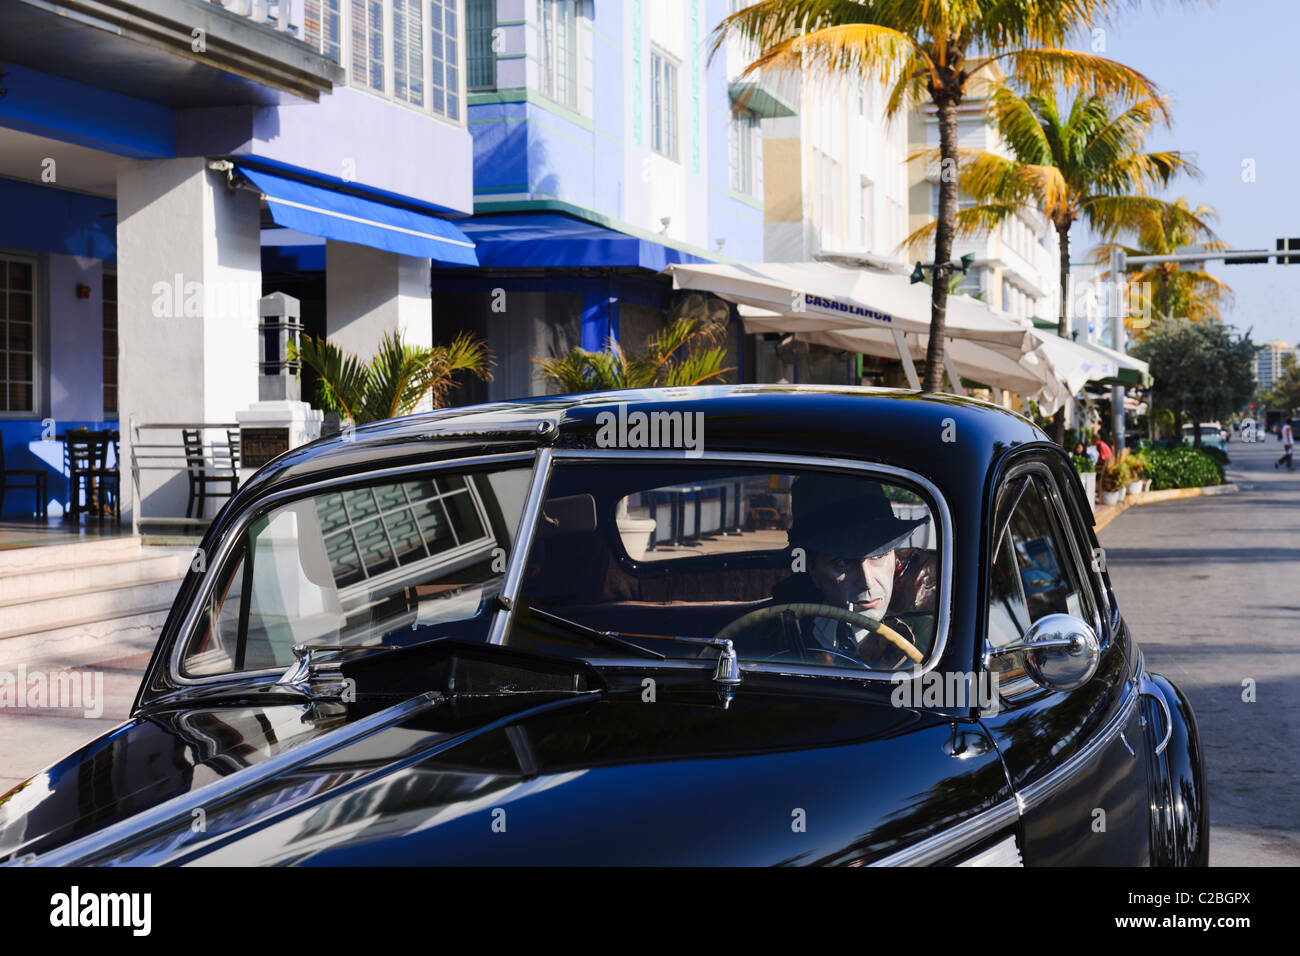 iconic Buick gangster, South Beach, Miami - Stock Image